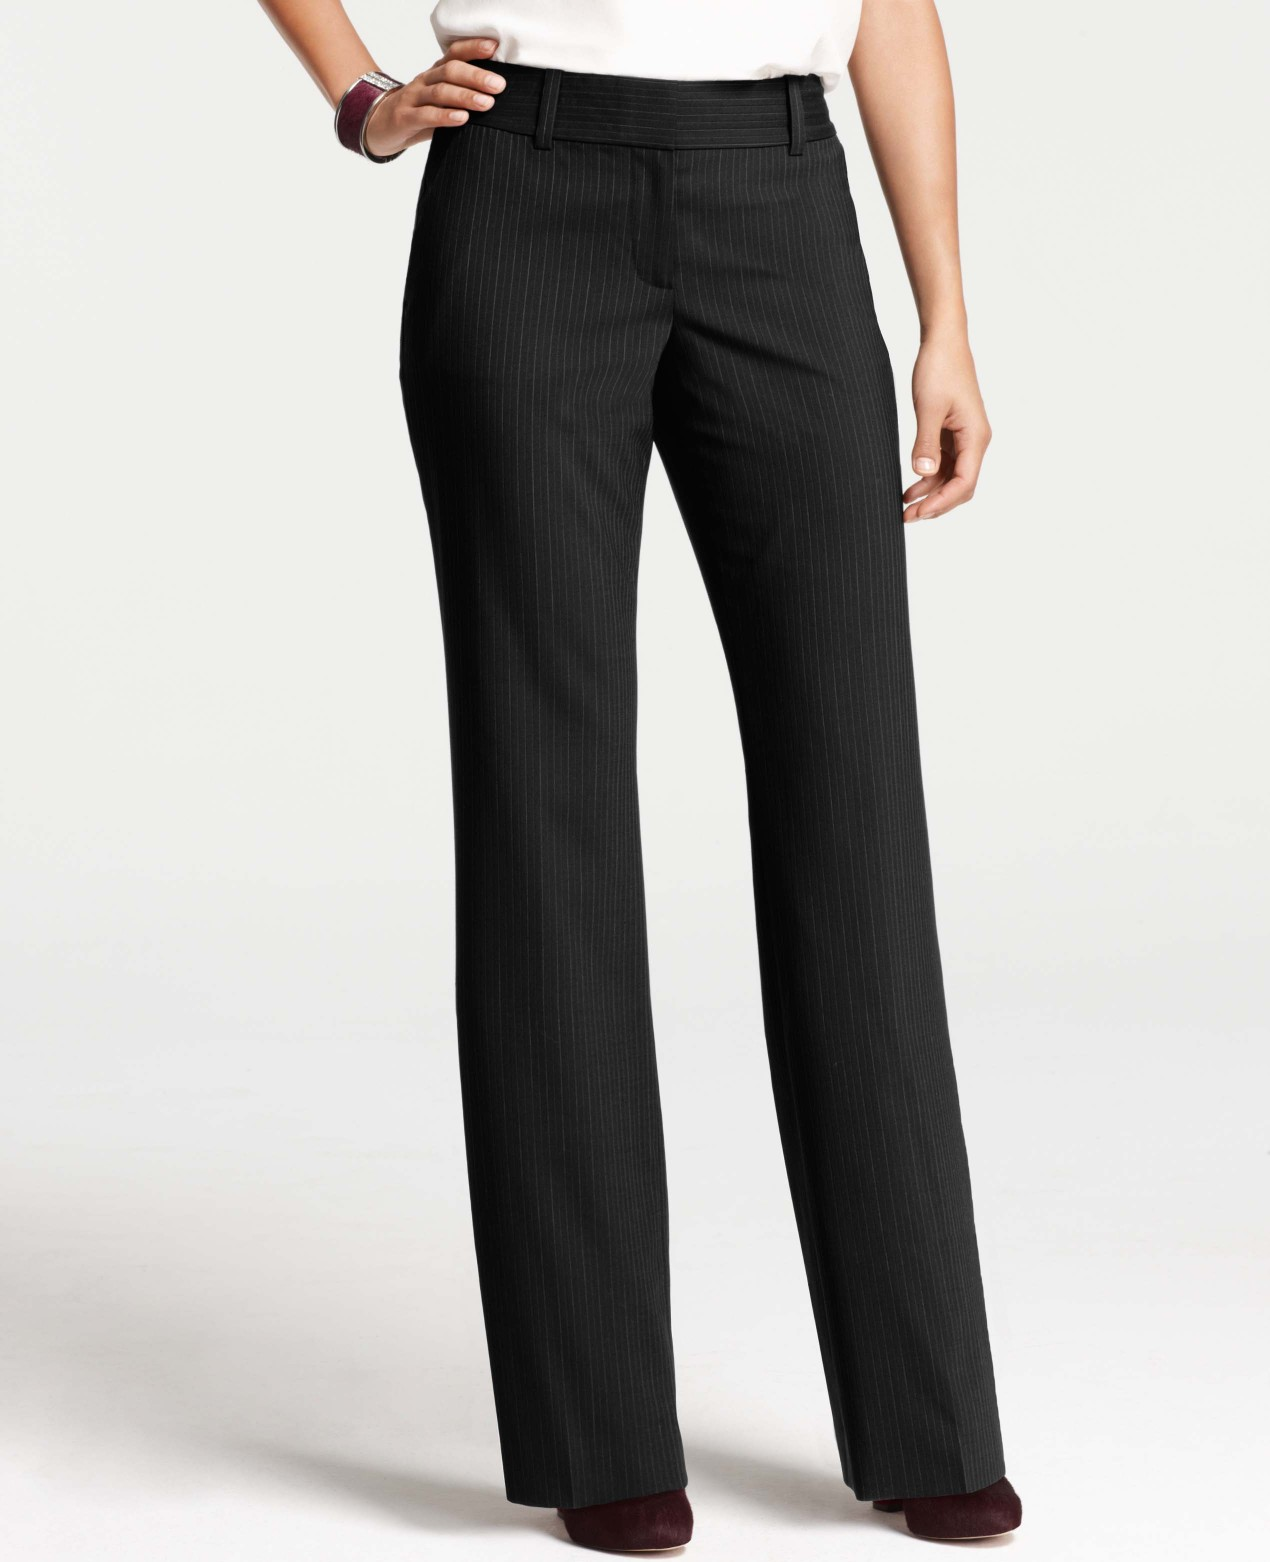 Ann taylor Petite Curvy Color Pinstripe Trousers in Black ...